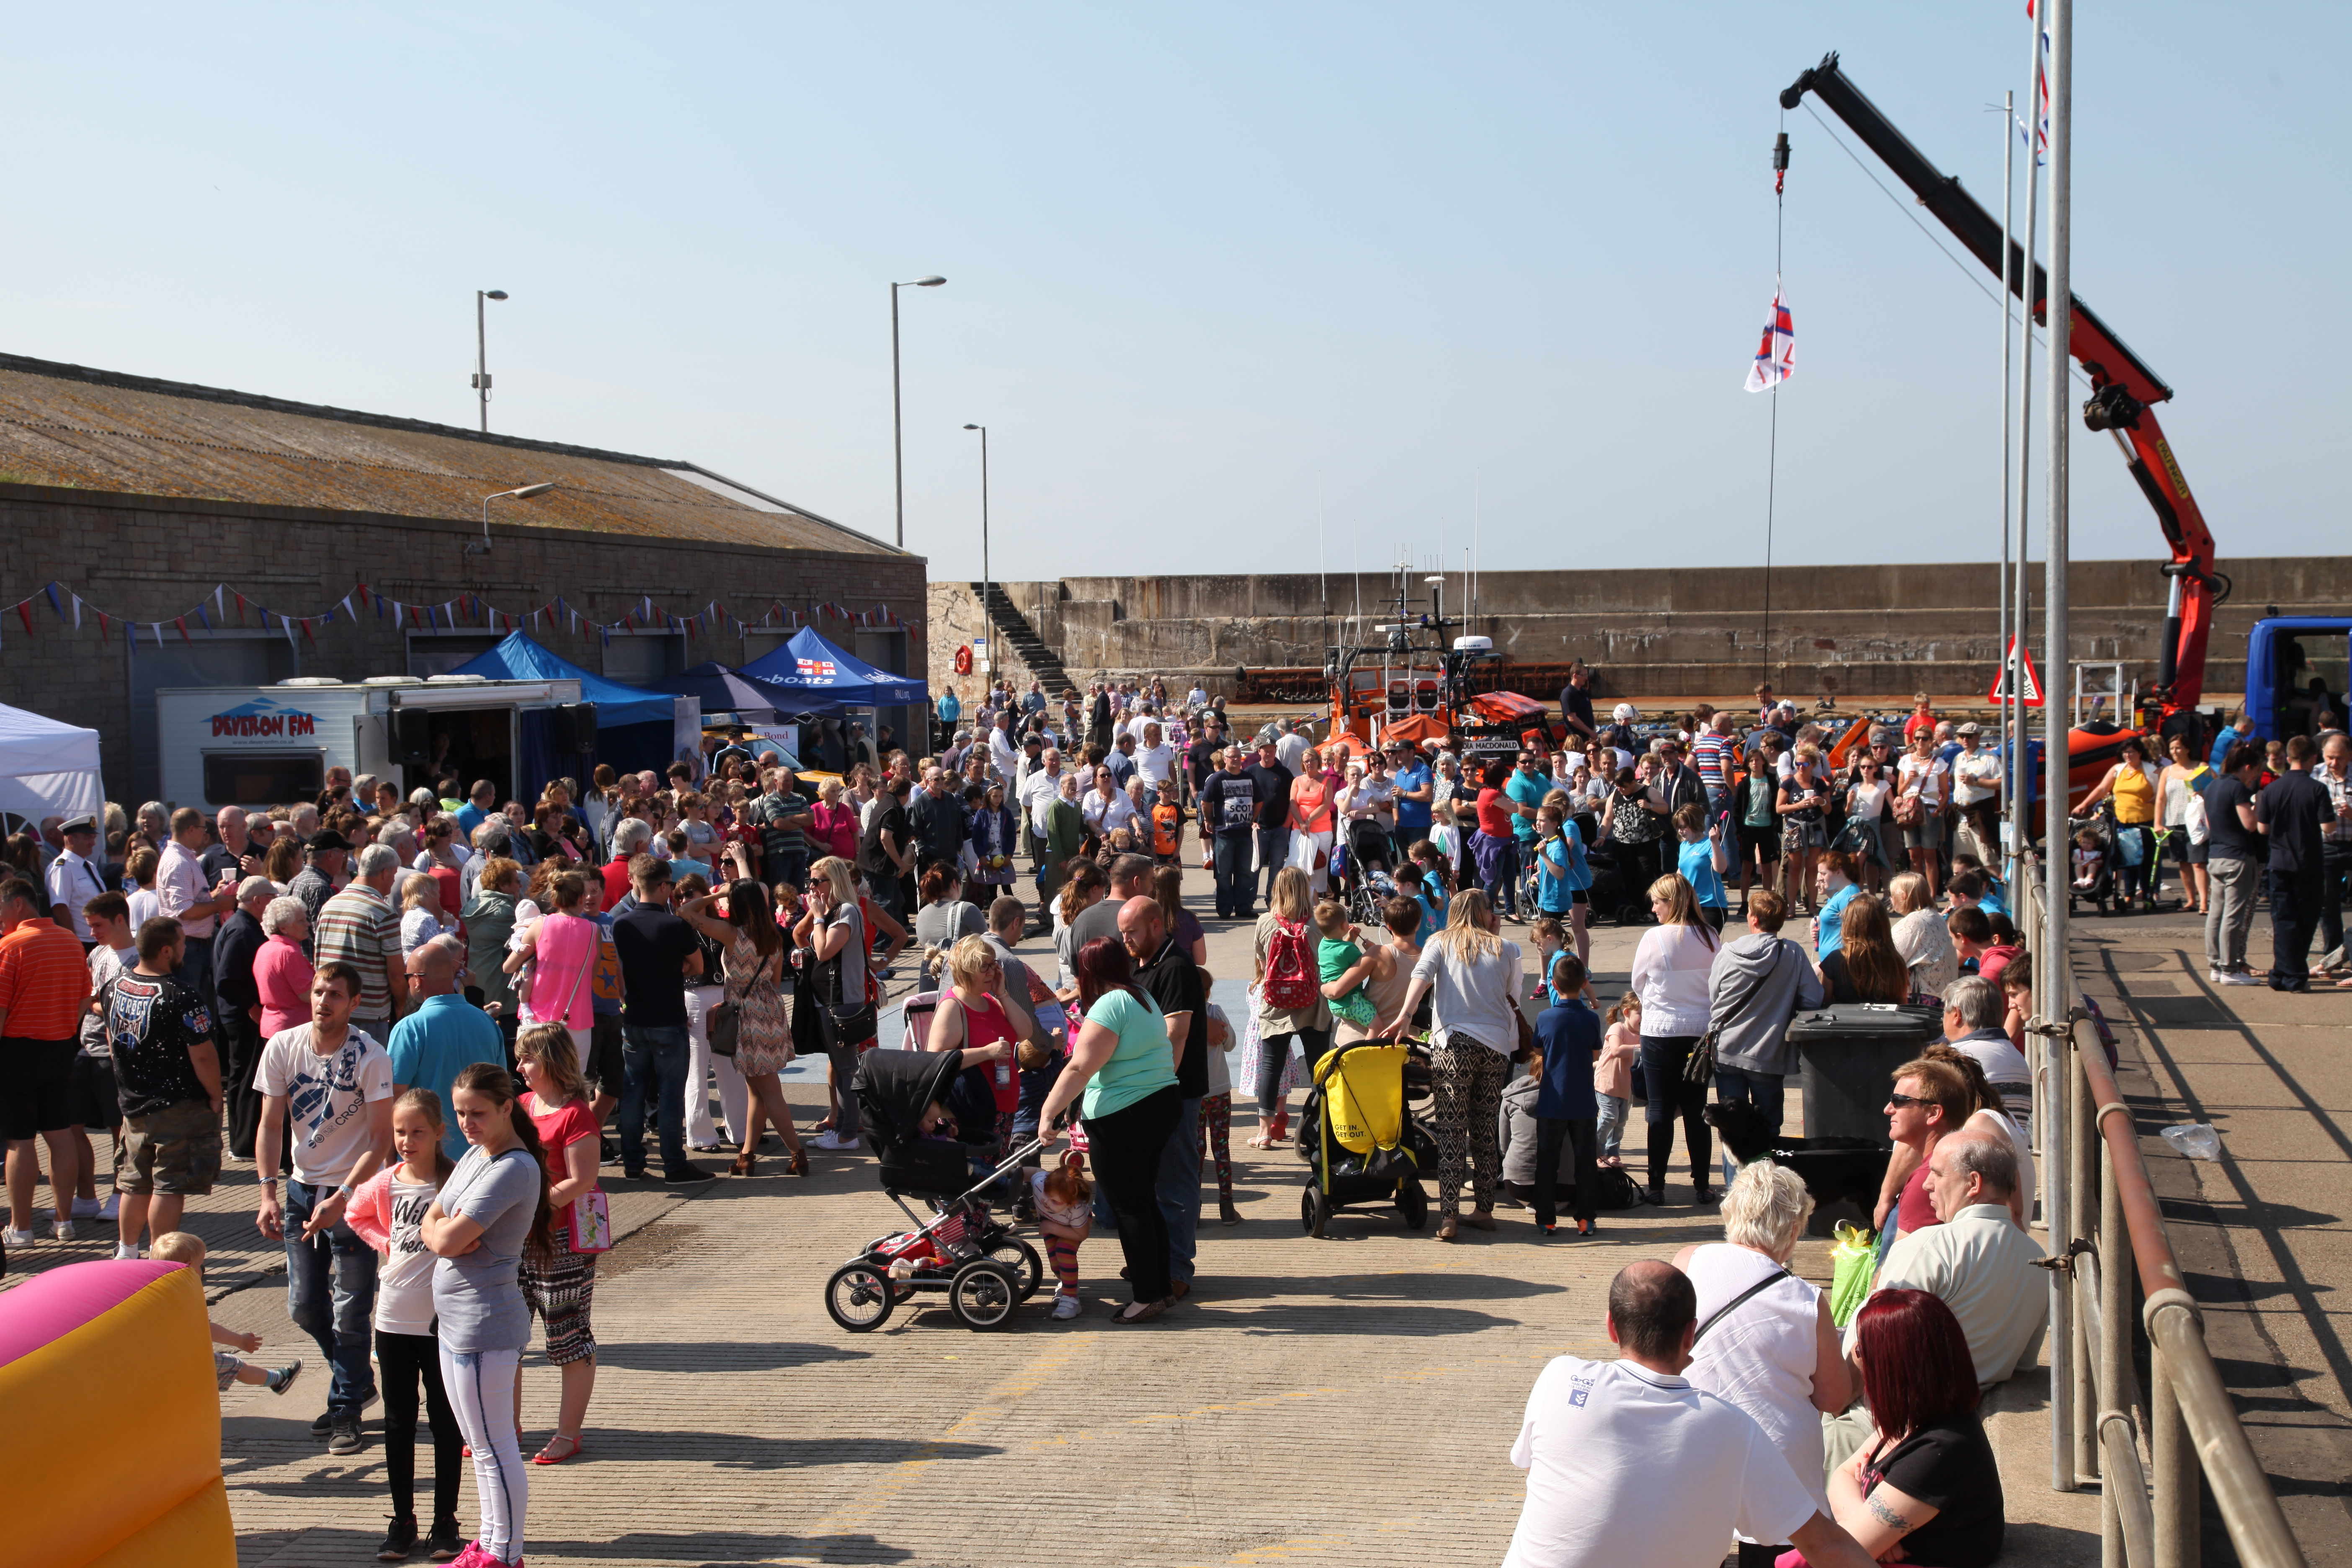 Crowds outside the fish market at the 2015 Macduff lifeboat gala day